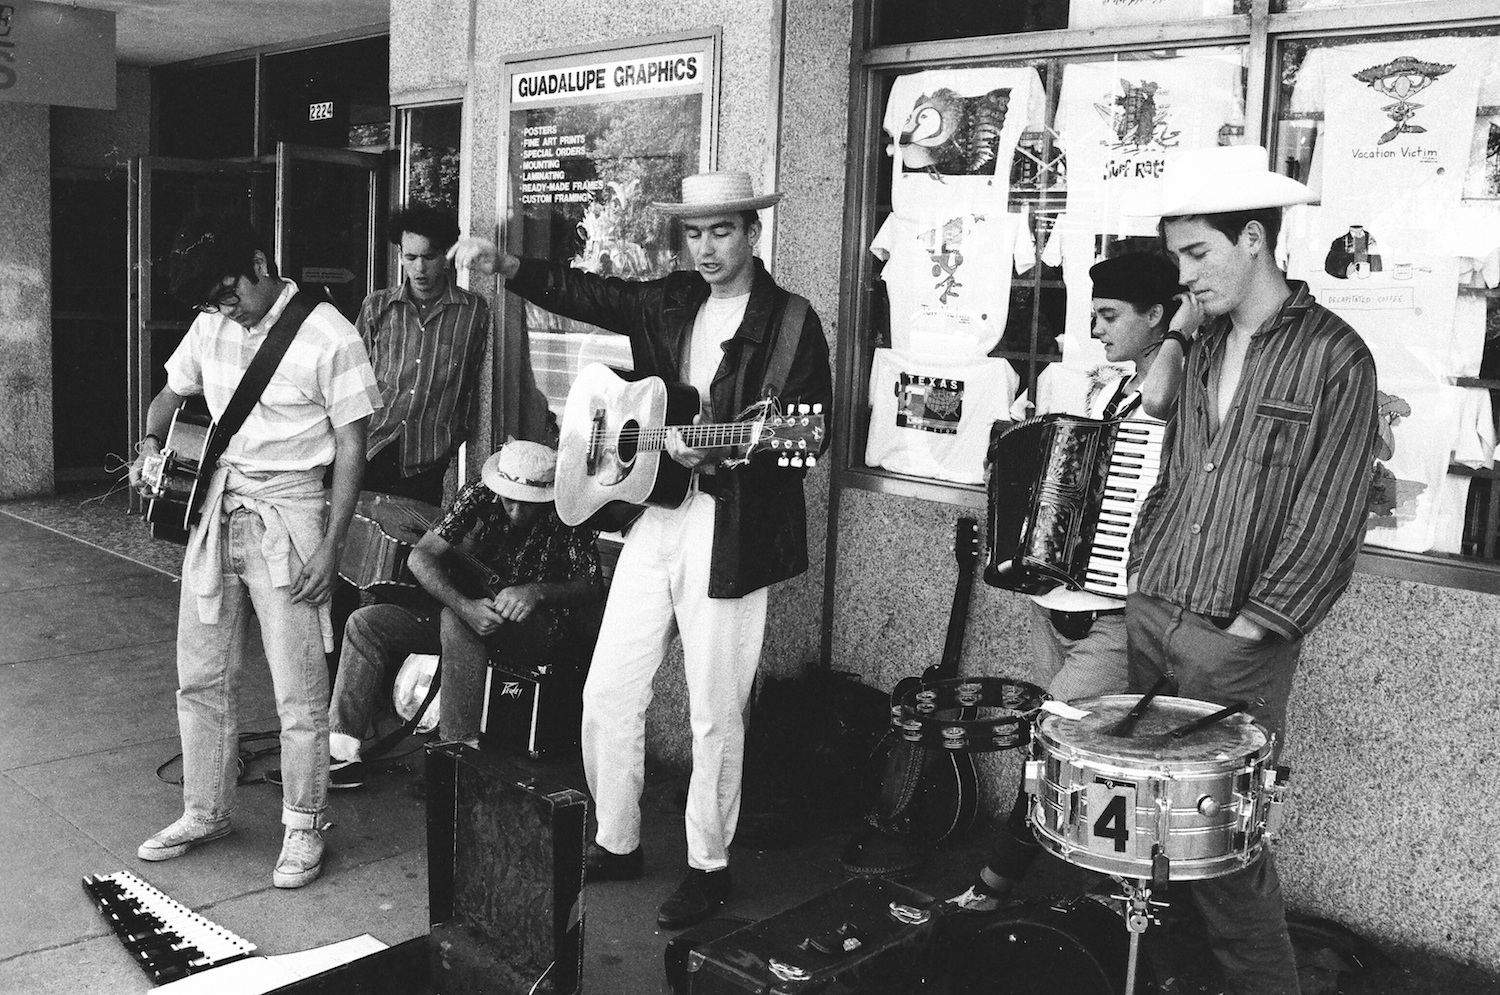 Poi Dog Pondering playing on the Street in Austin TX., 1986/ Cliff, Jared, Alan, Frank Orrall, Abra Moore, Sean Coffey /Photo by Jean Francois Berneron